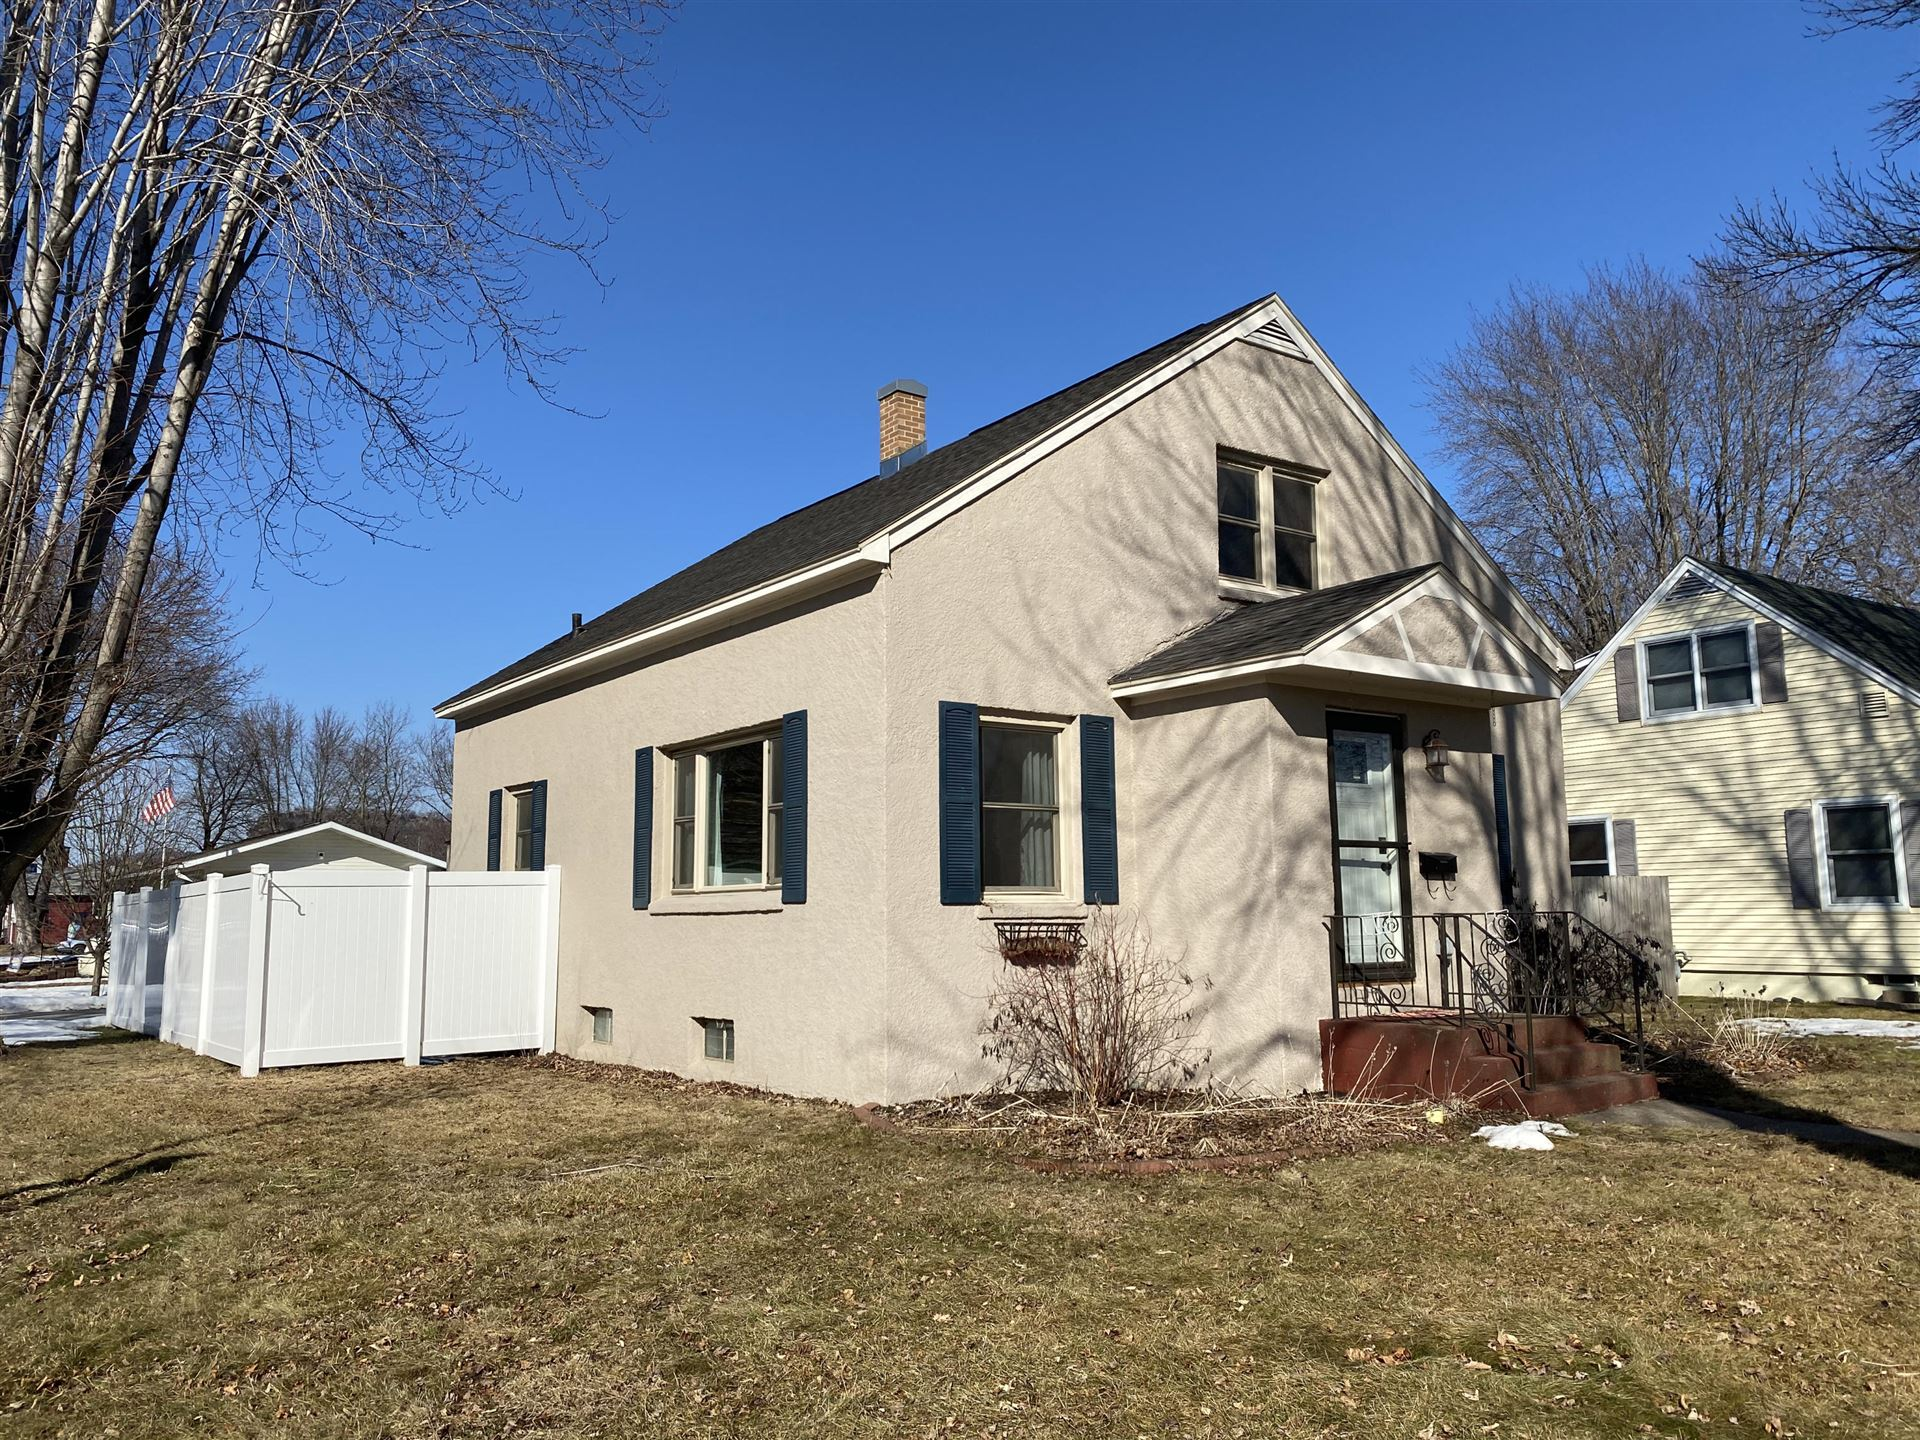 2701 Ray Pl, La Crosse, WI 54601 - MLS#: 1729016